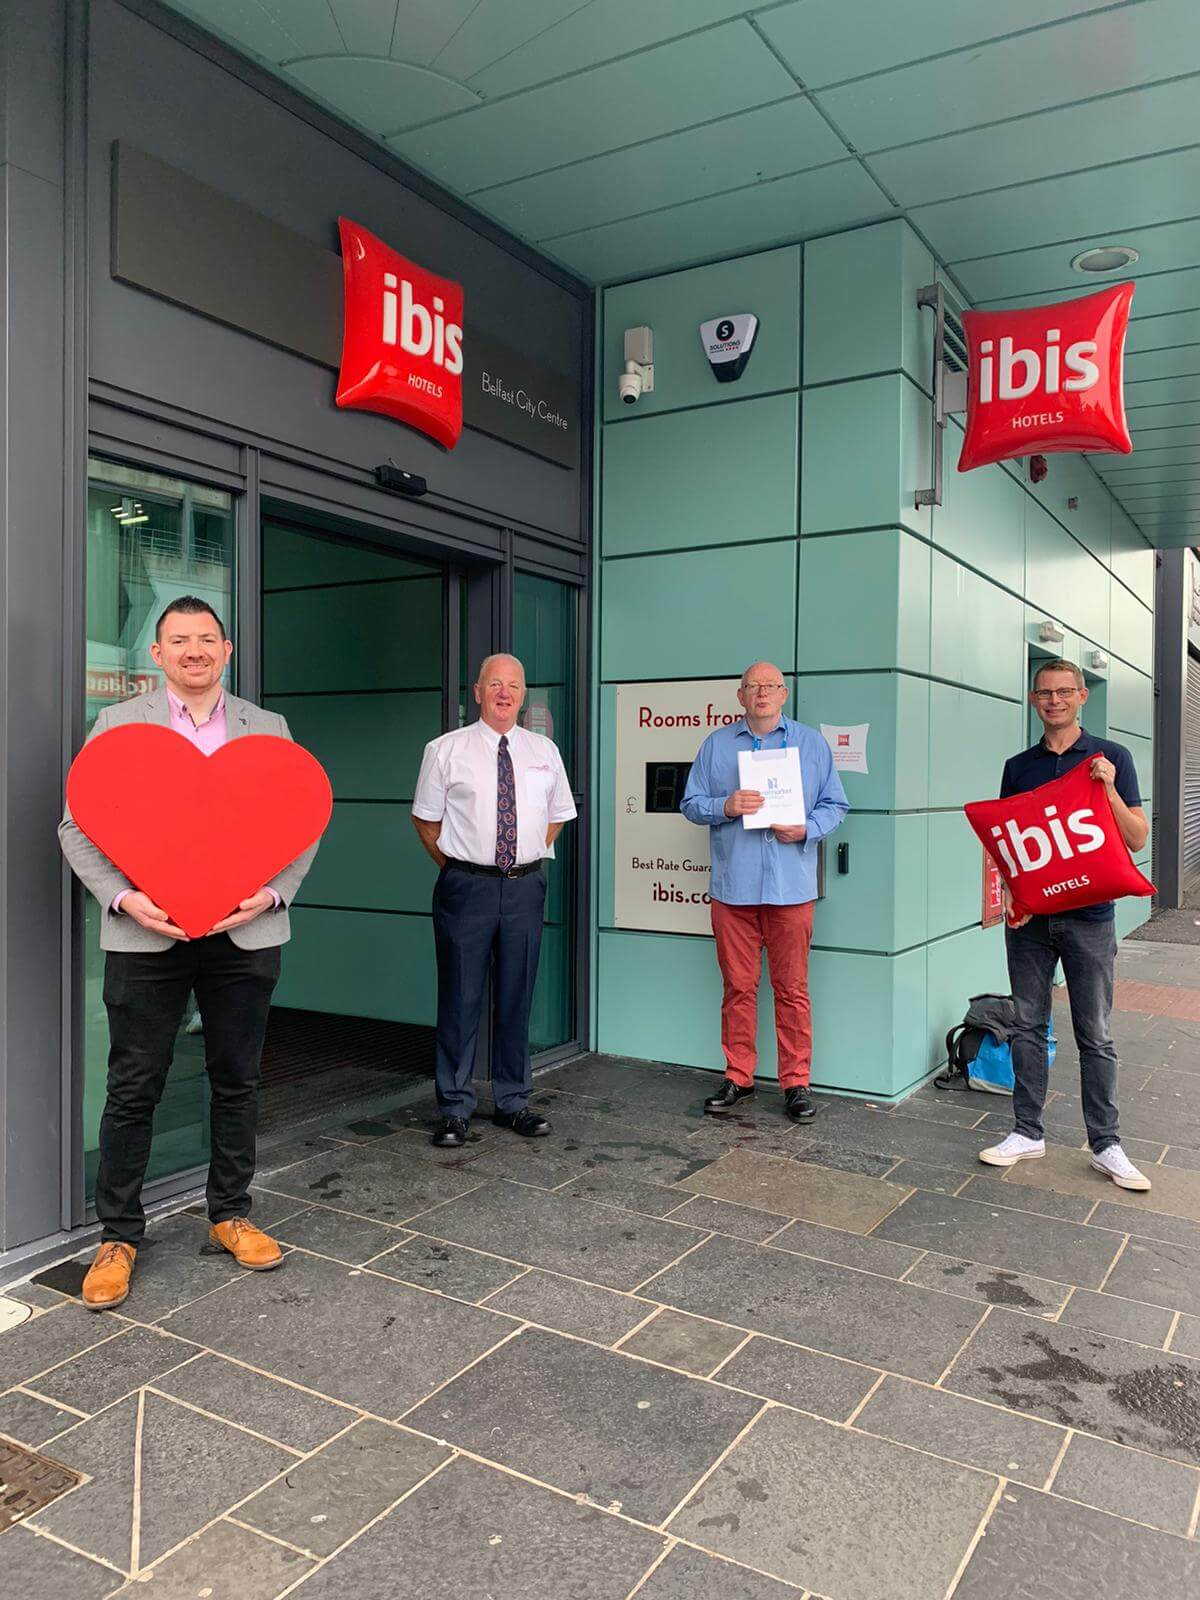 Ibis hotel city centre belfast